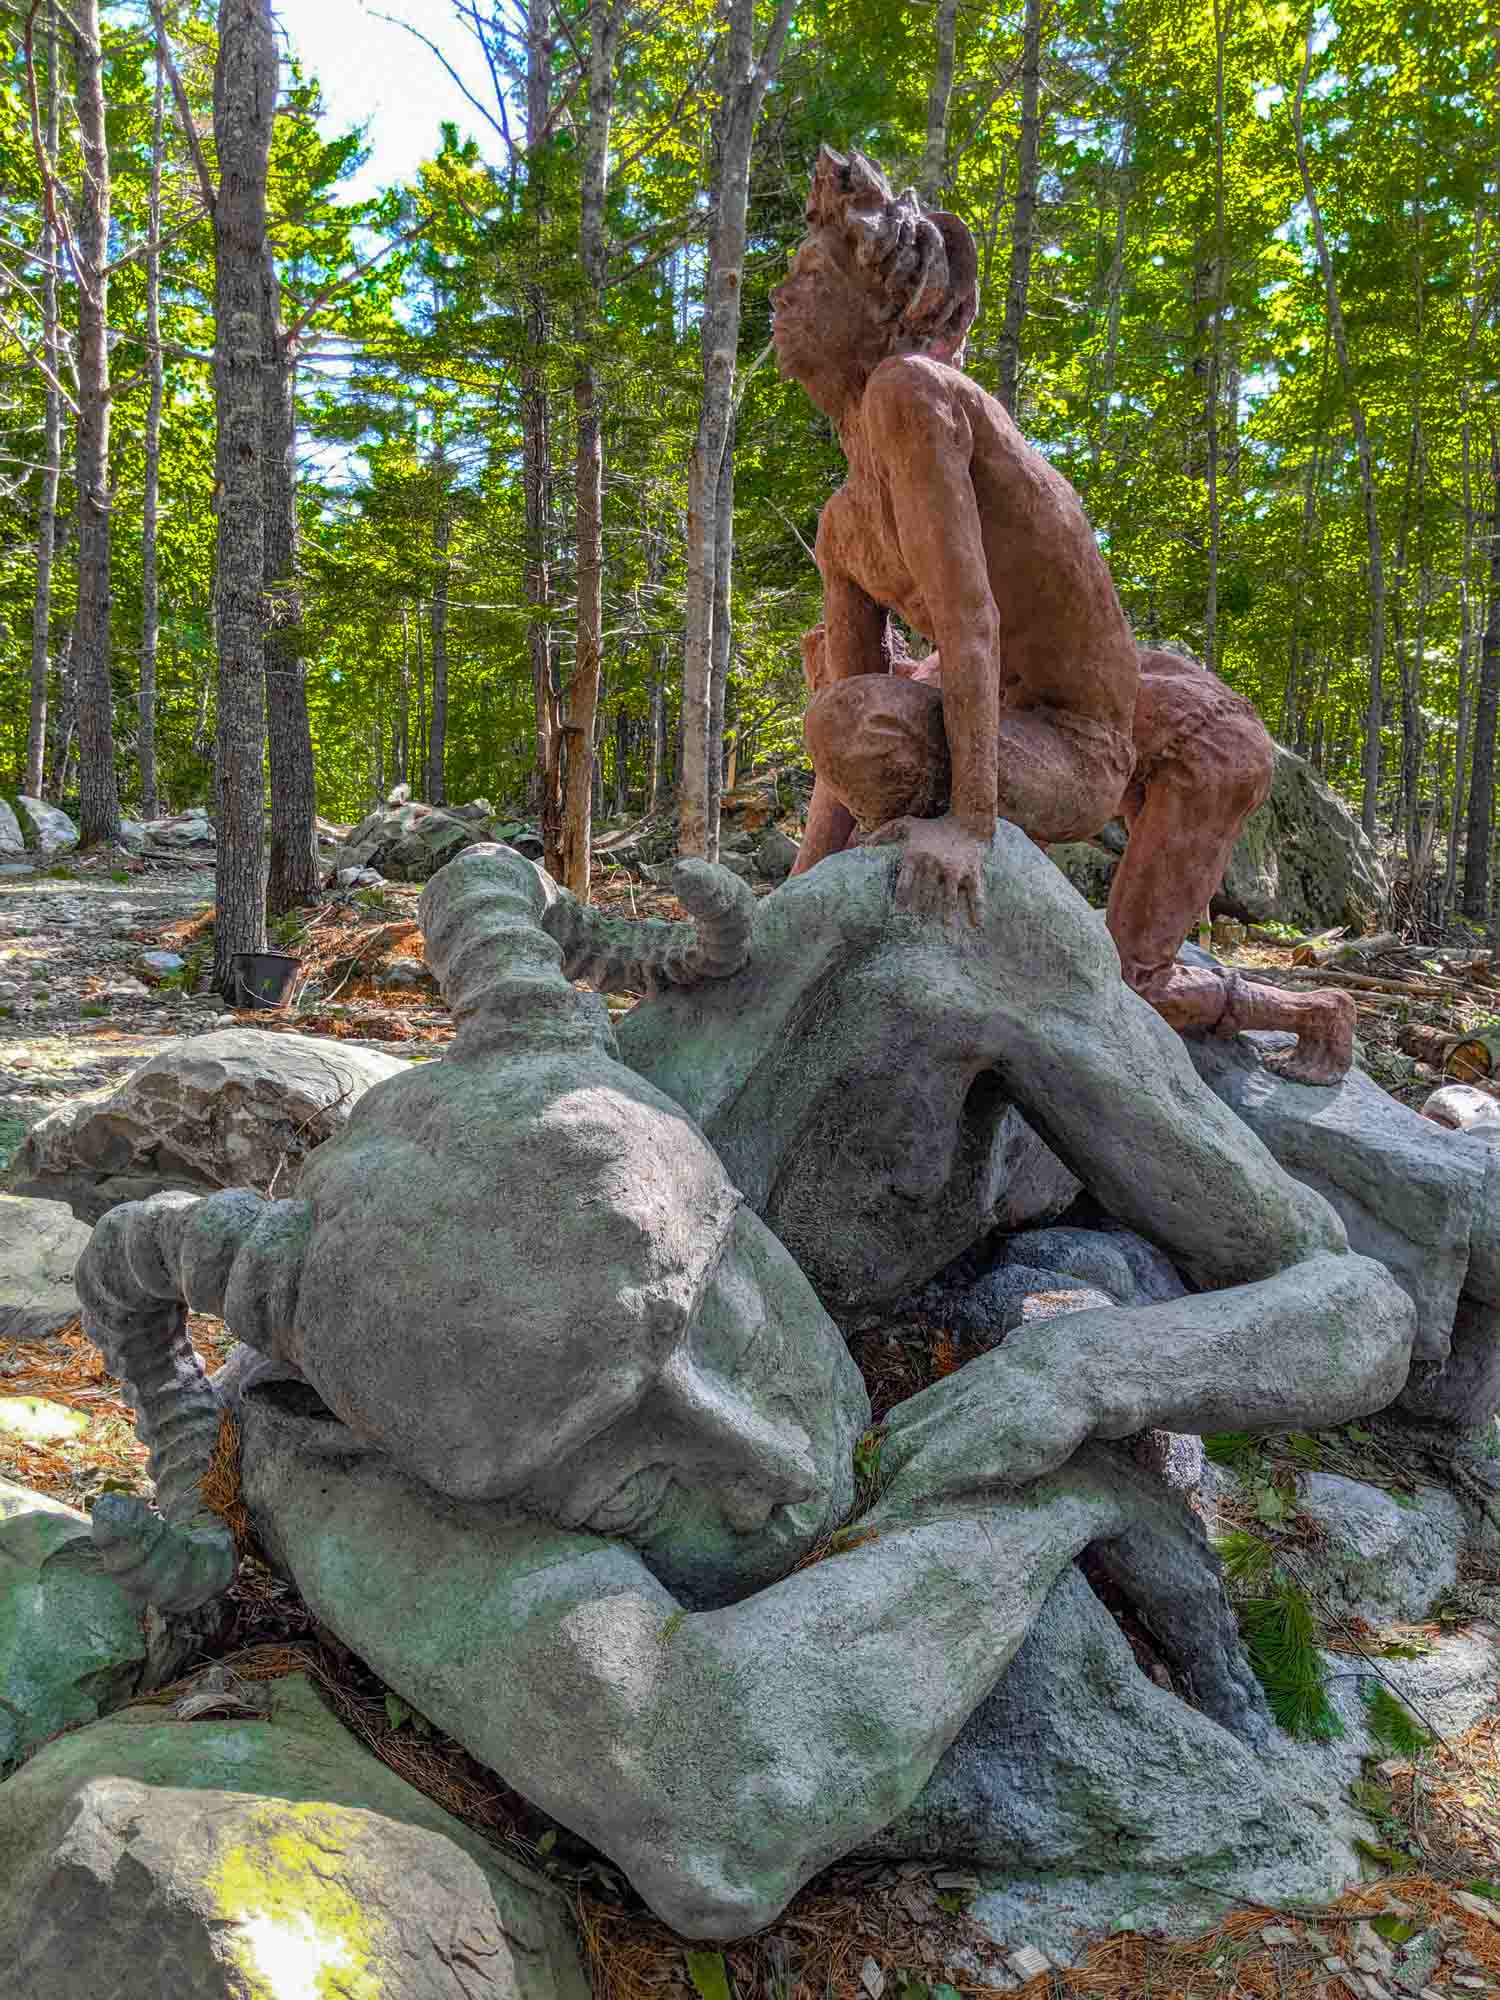 Cosby's Sculpture Forest in Liverpool Nova Scotia